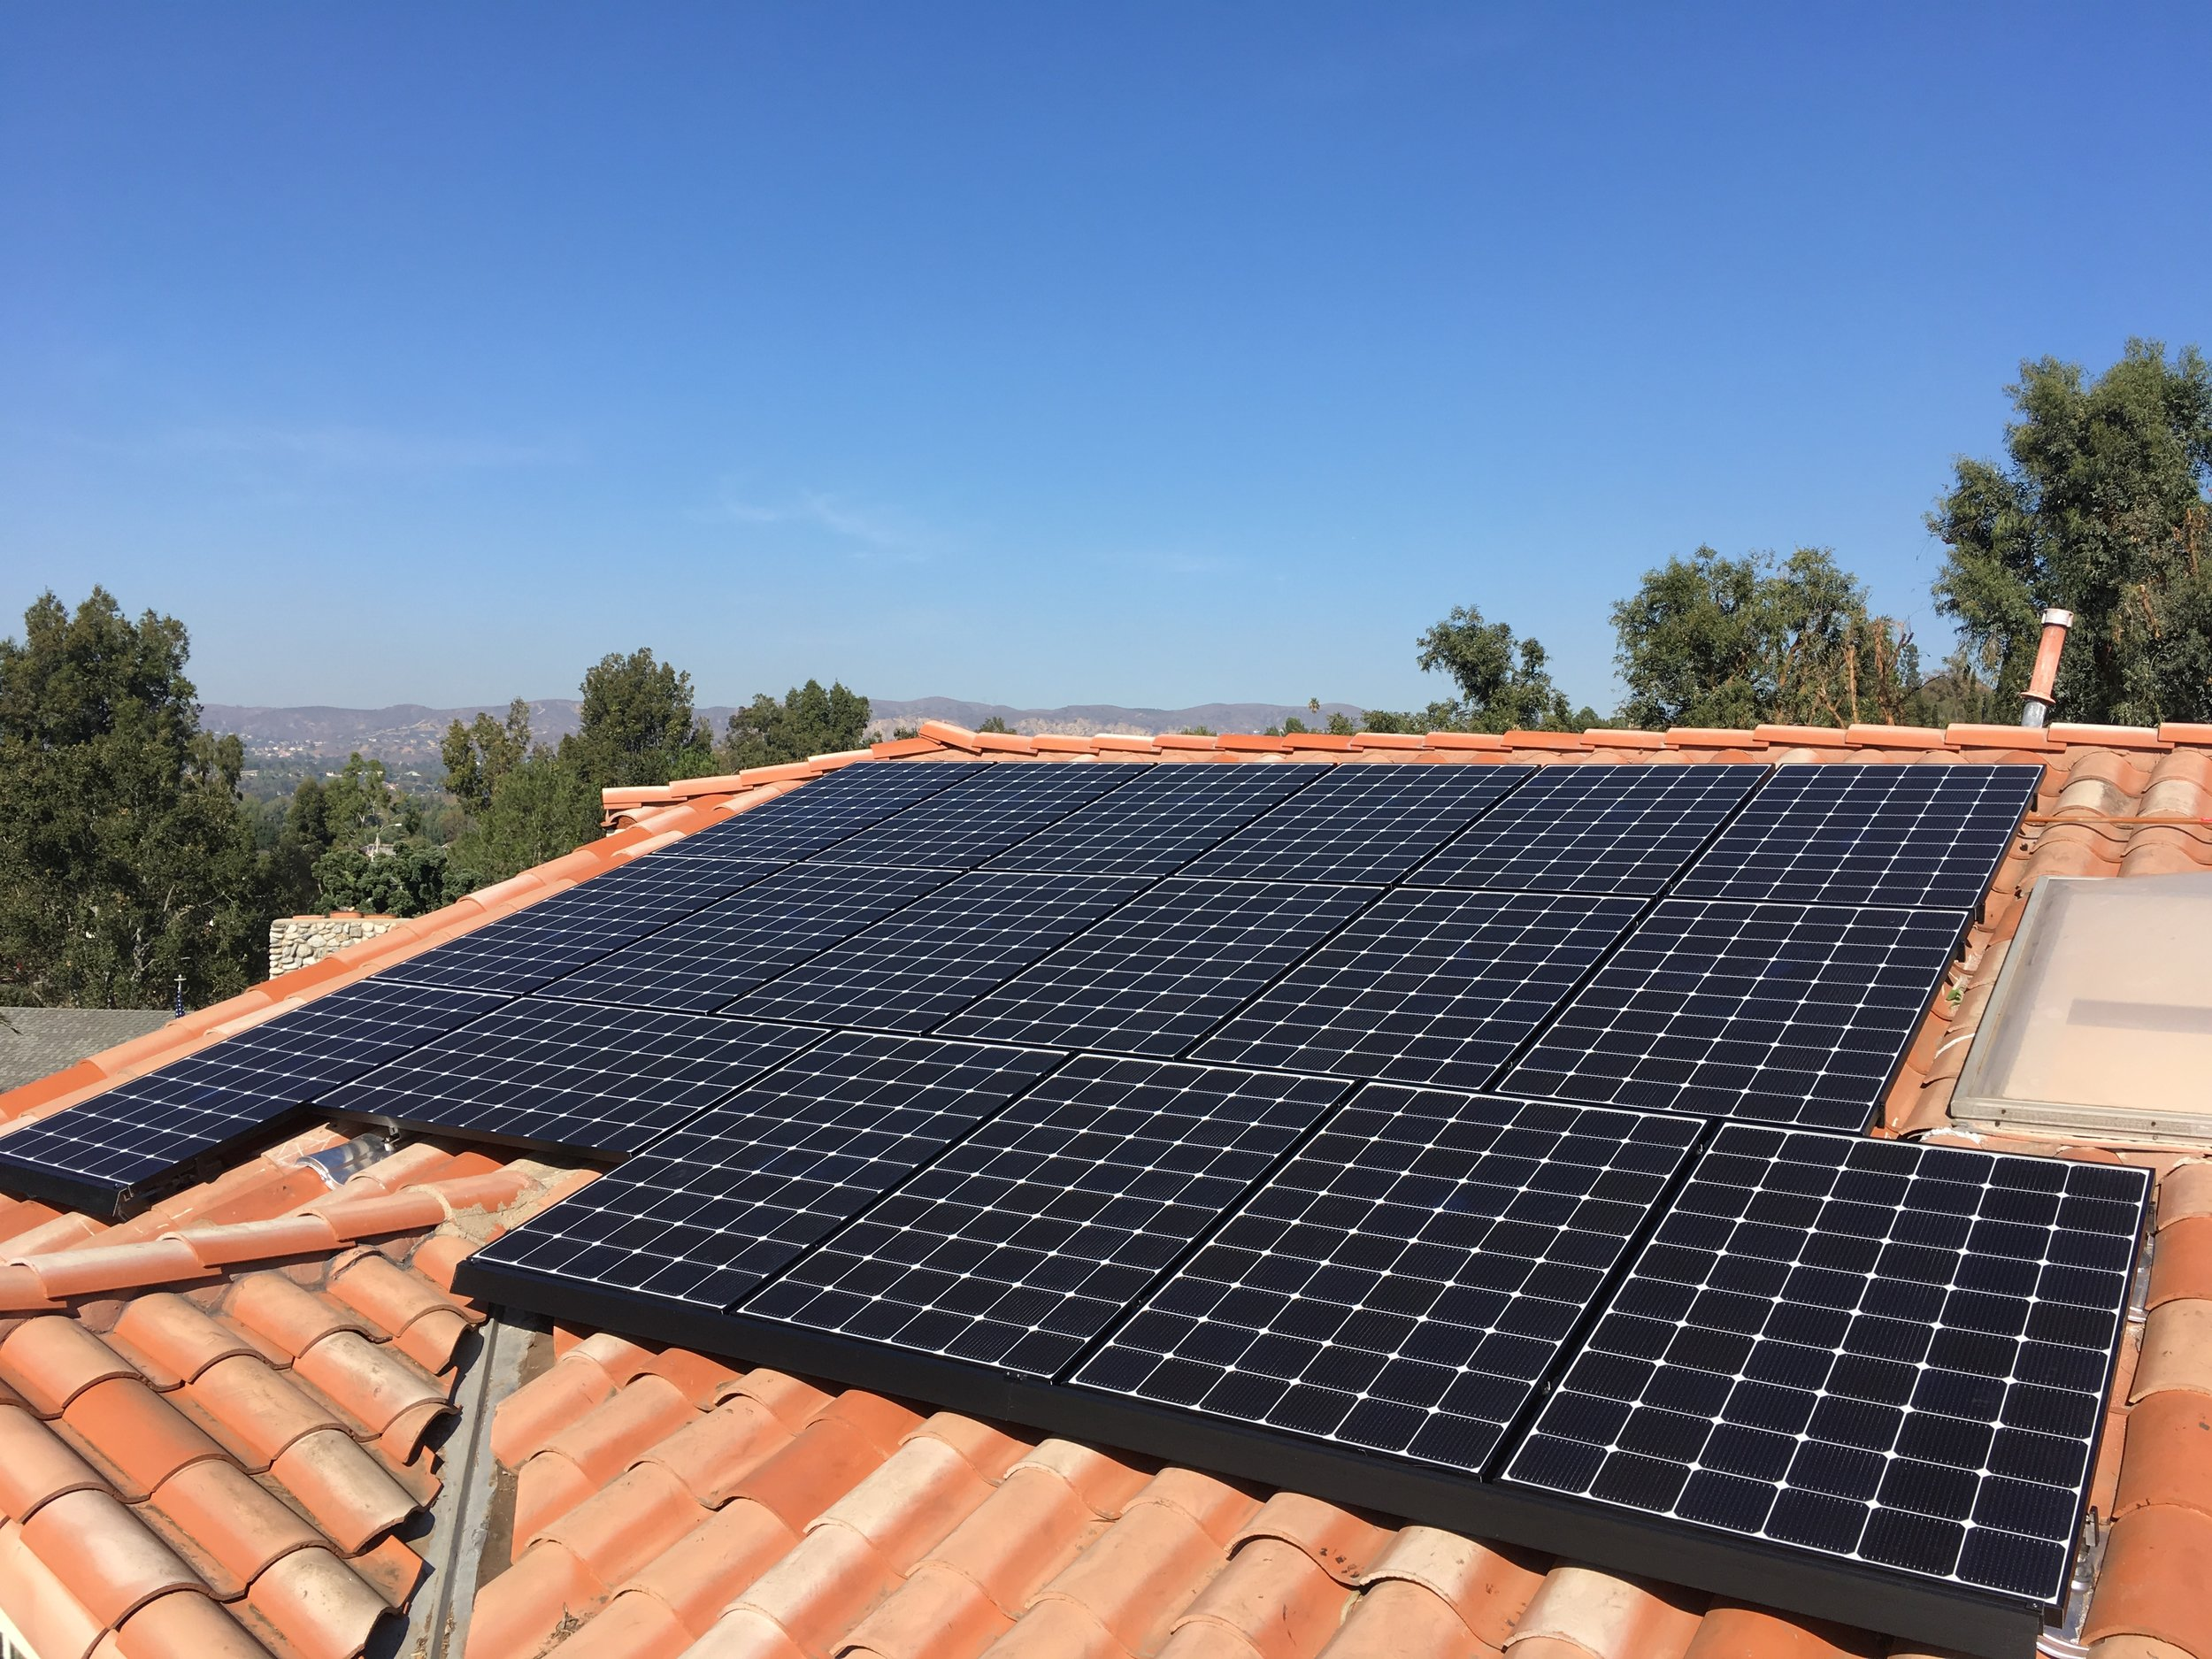 ANAHEIM HILLS, CA - 33 high efficiency PV modules total to 11.0 kWDC located in Anaheim Hills. This system was commissioned in 2018 and is expected to save the Homeowner over $100,000 in electricity bills over the next 25 years.